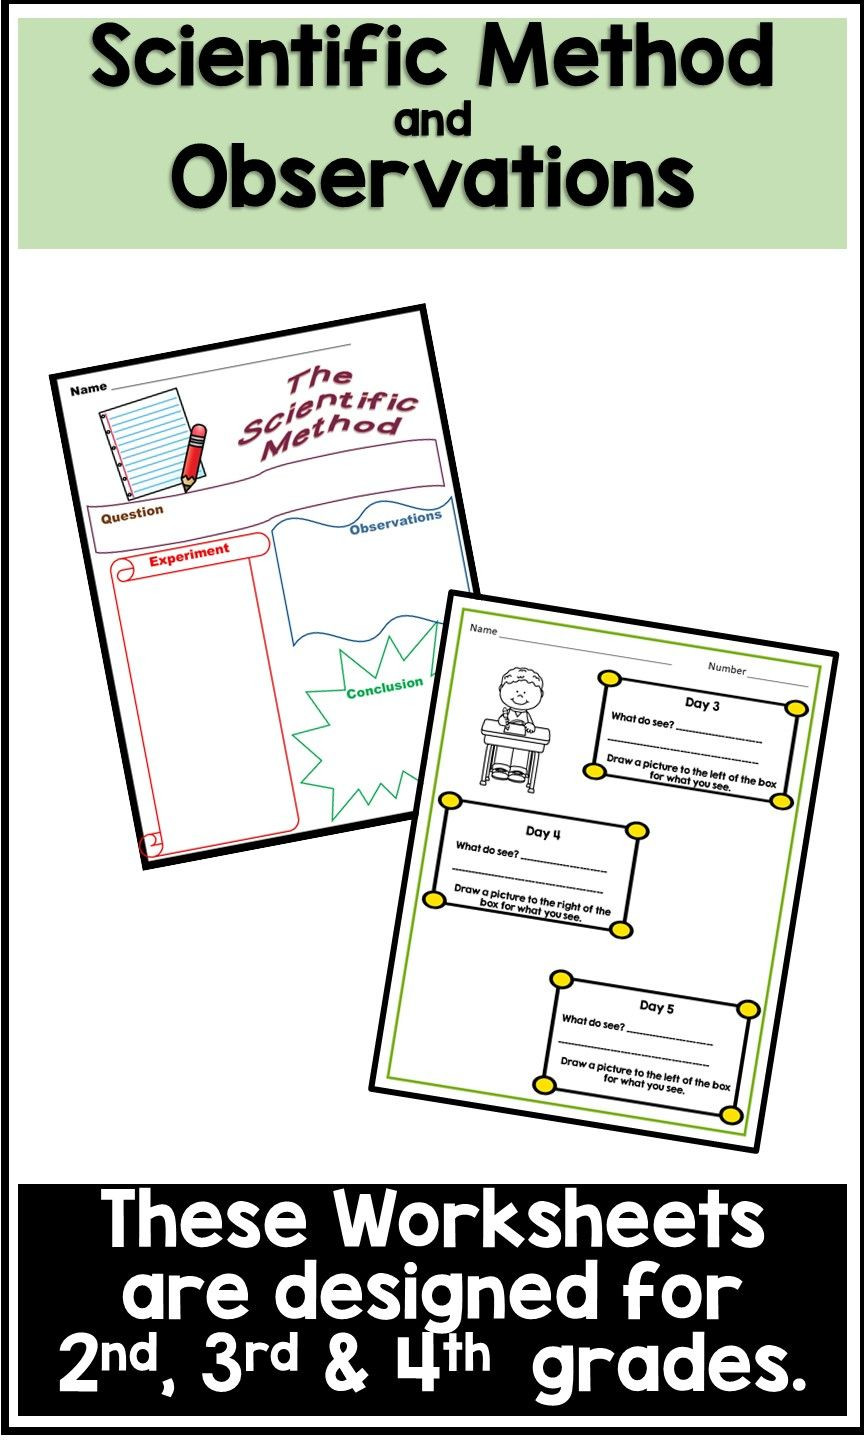 Scientific Method 3rd Grade Worksheet the Scientific Method for Lower Elementary